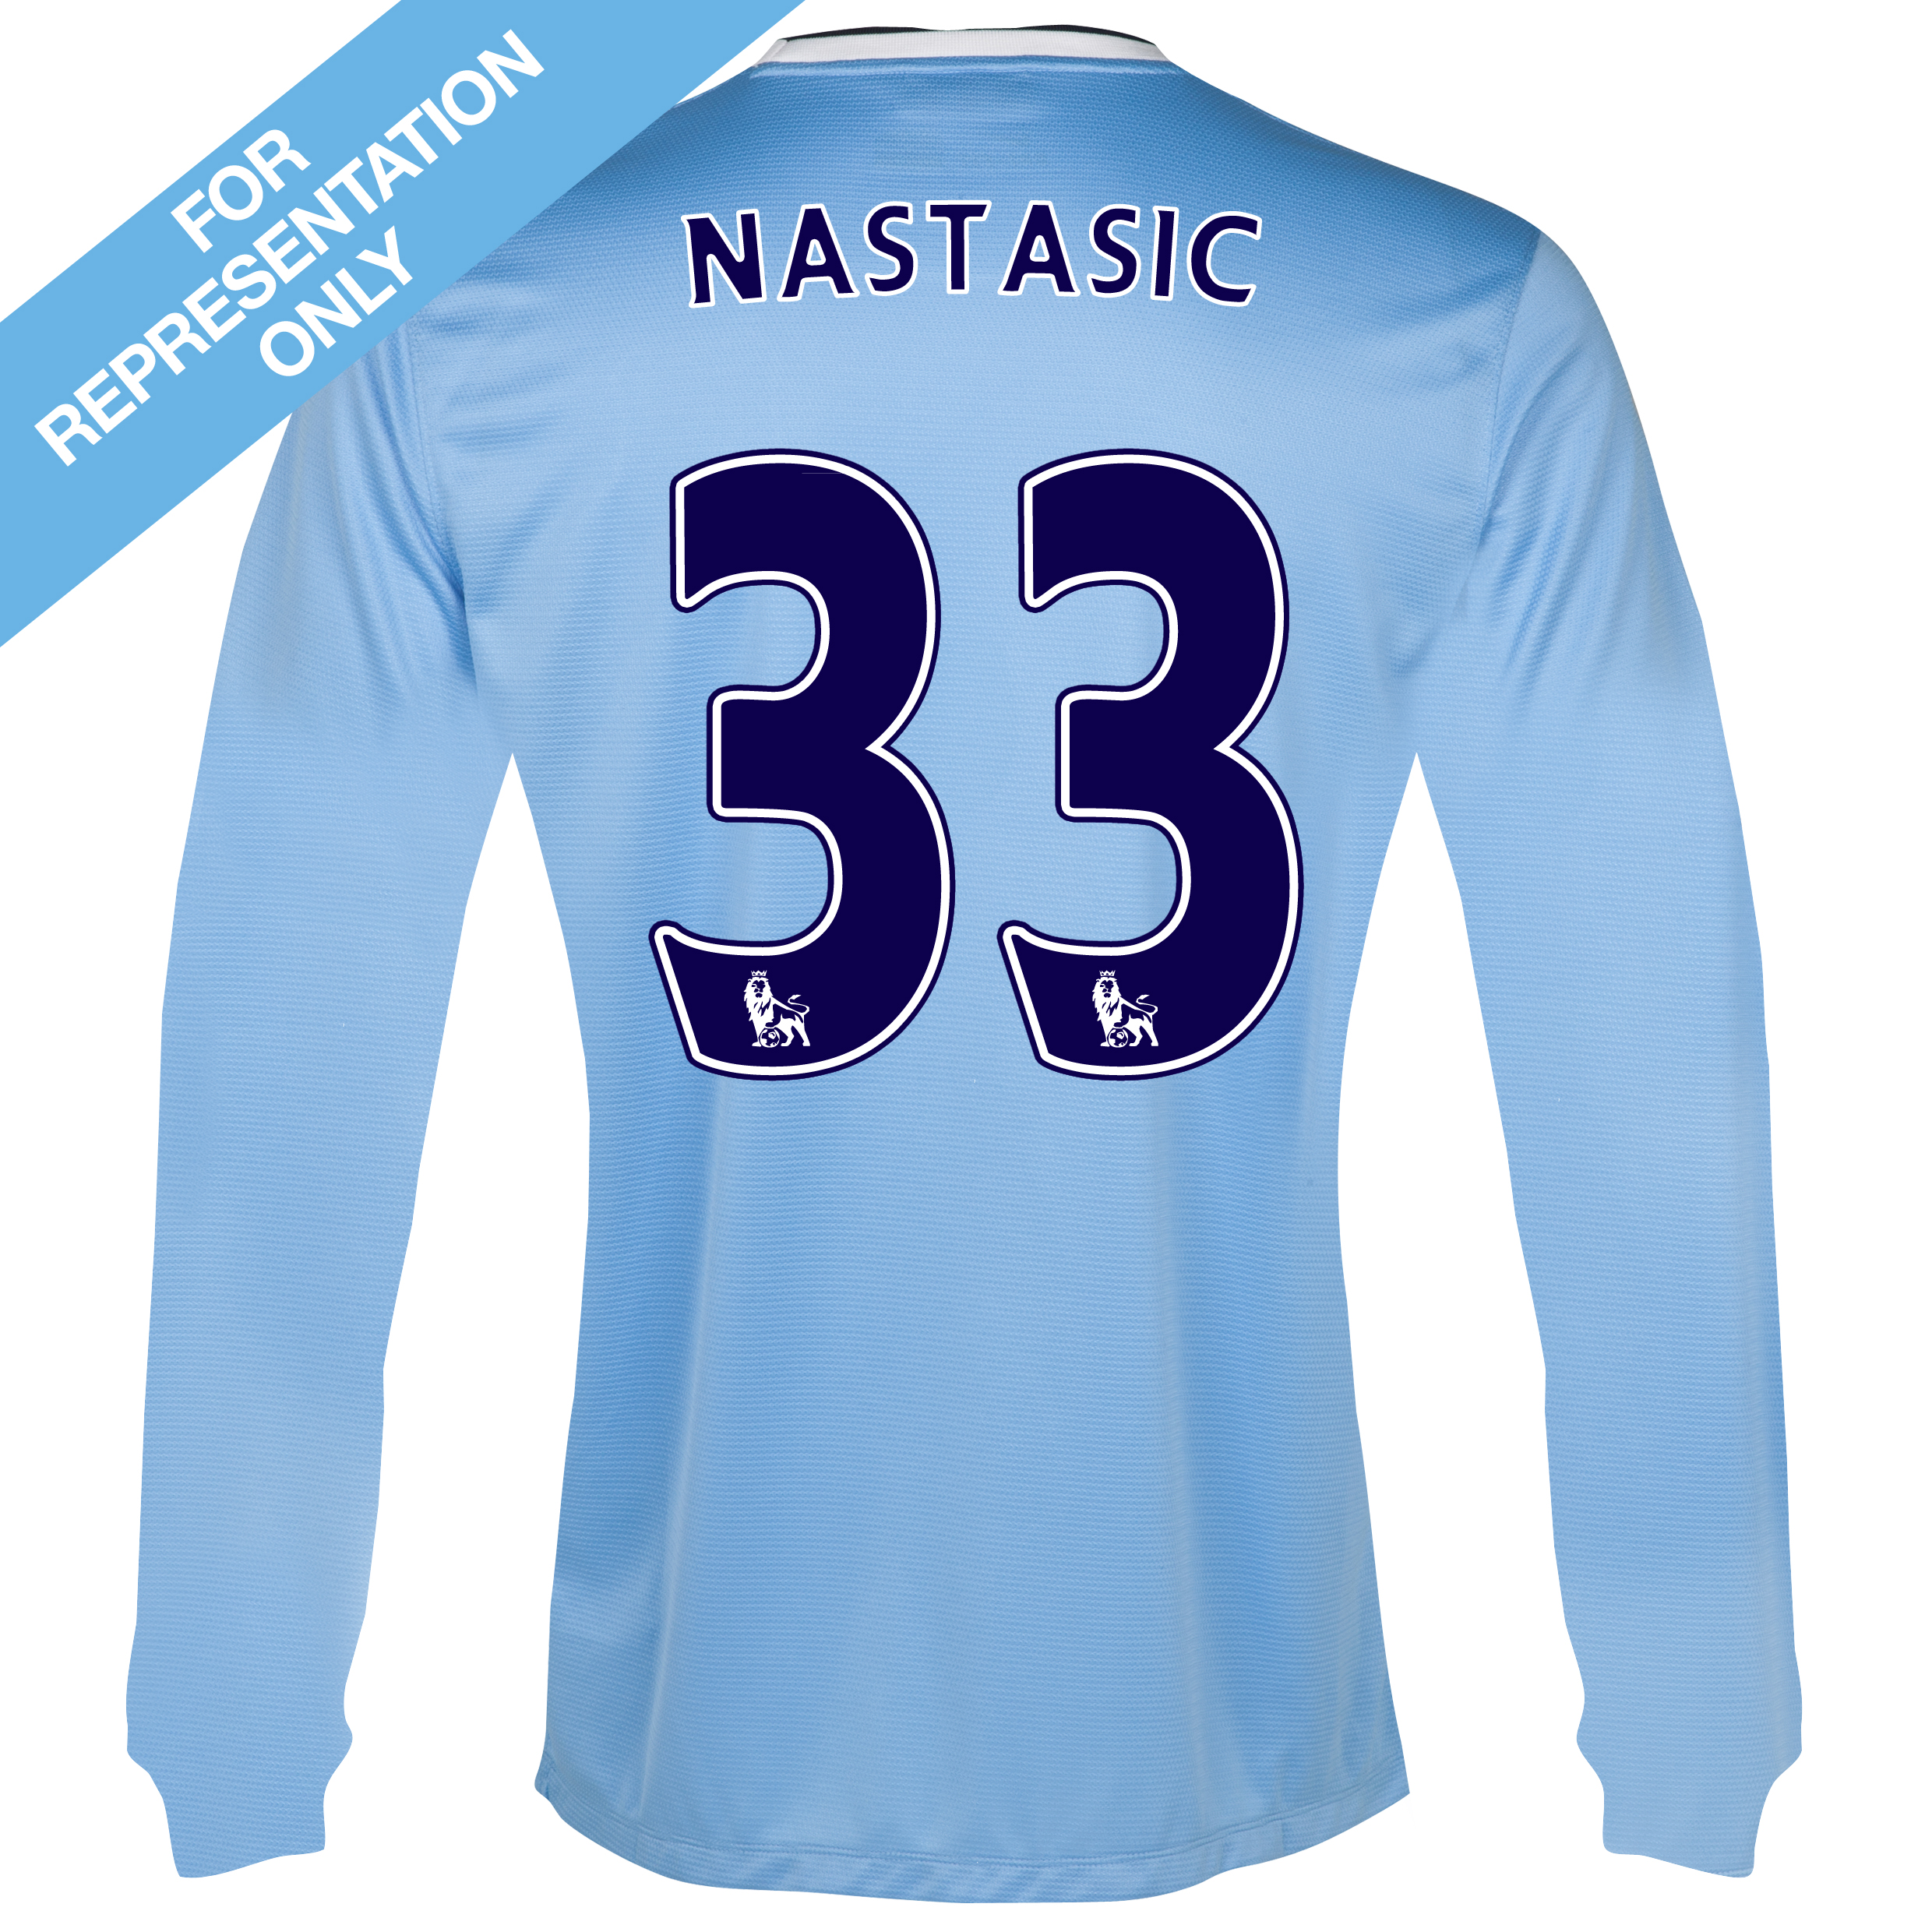 Manchester City Home Shirt 2013/14 - Long Sleeved - Junior with Nastasic 33 printing